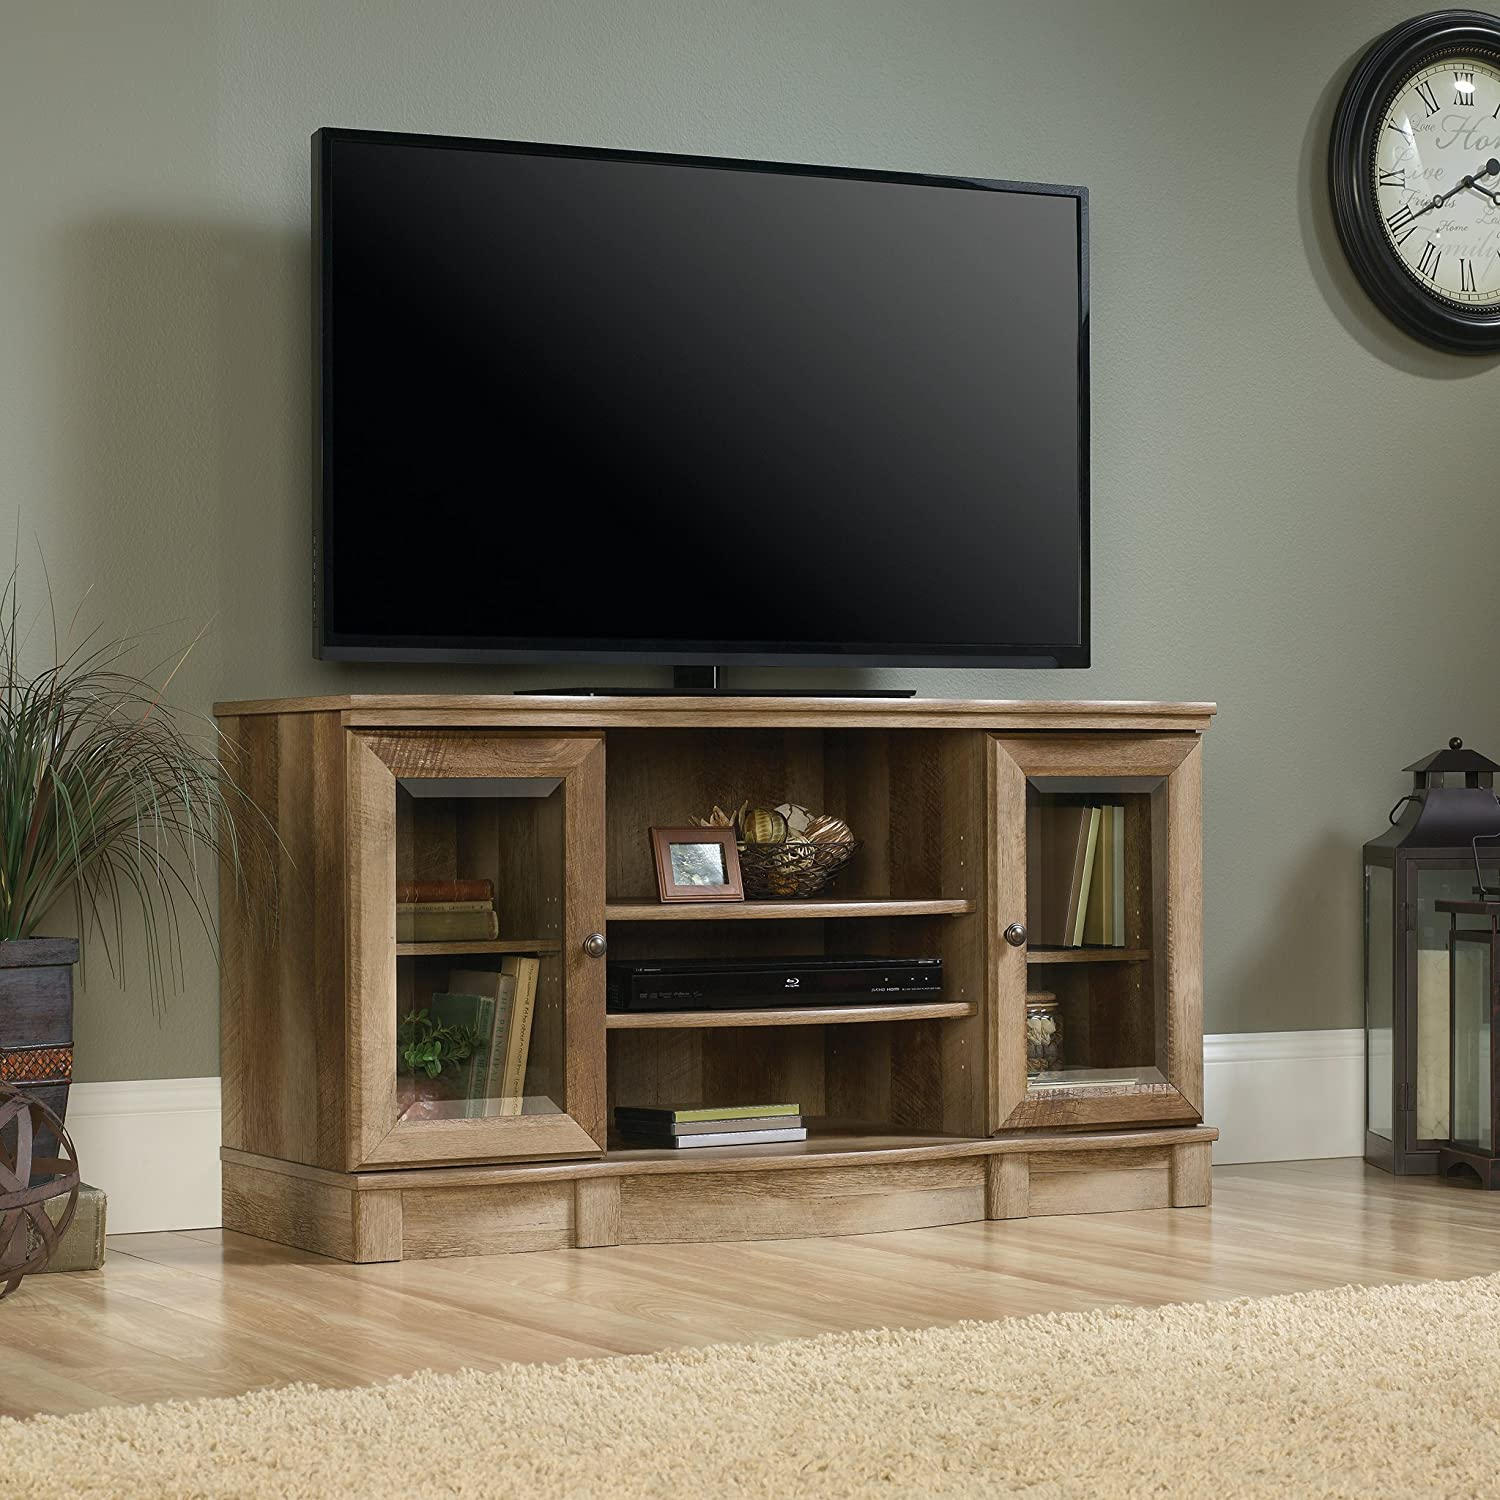 The 5 Best TV Stands In 2018: Reviews & Buying Guide 16